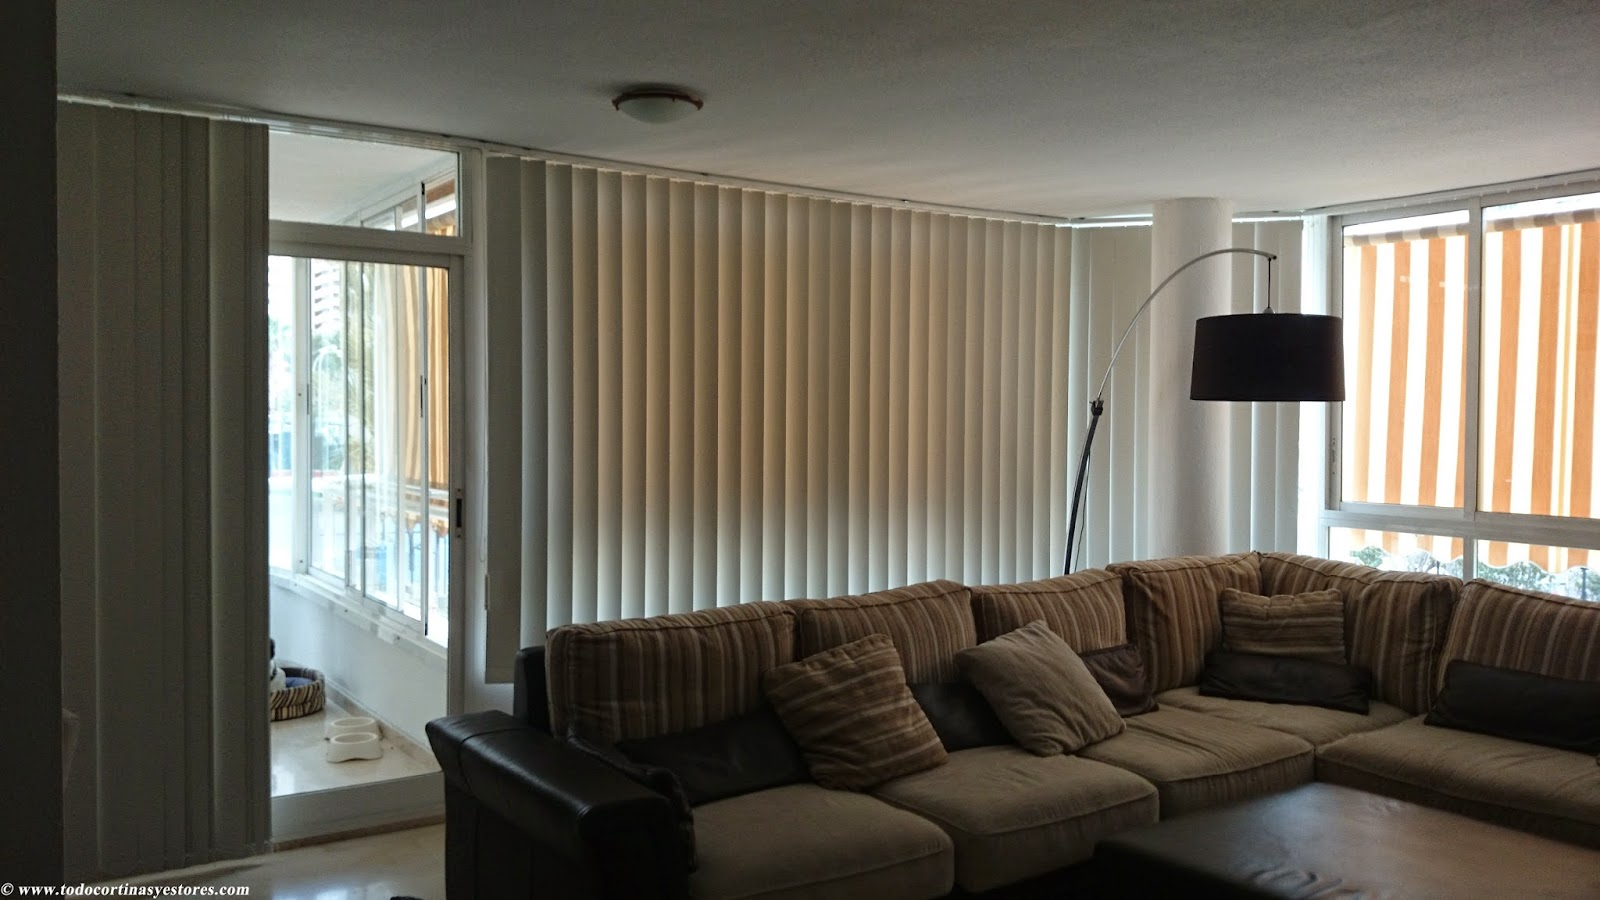 Decoracion interior cortinas verticales estores for Cortinas para salon 2015